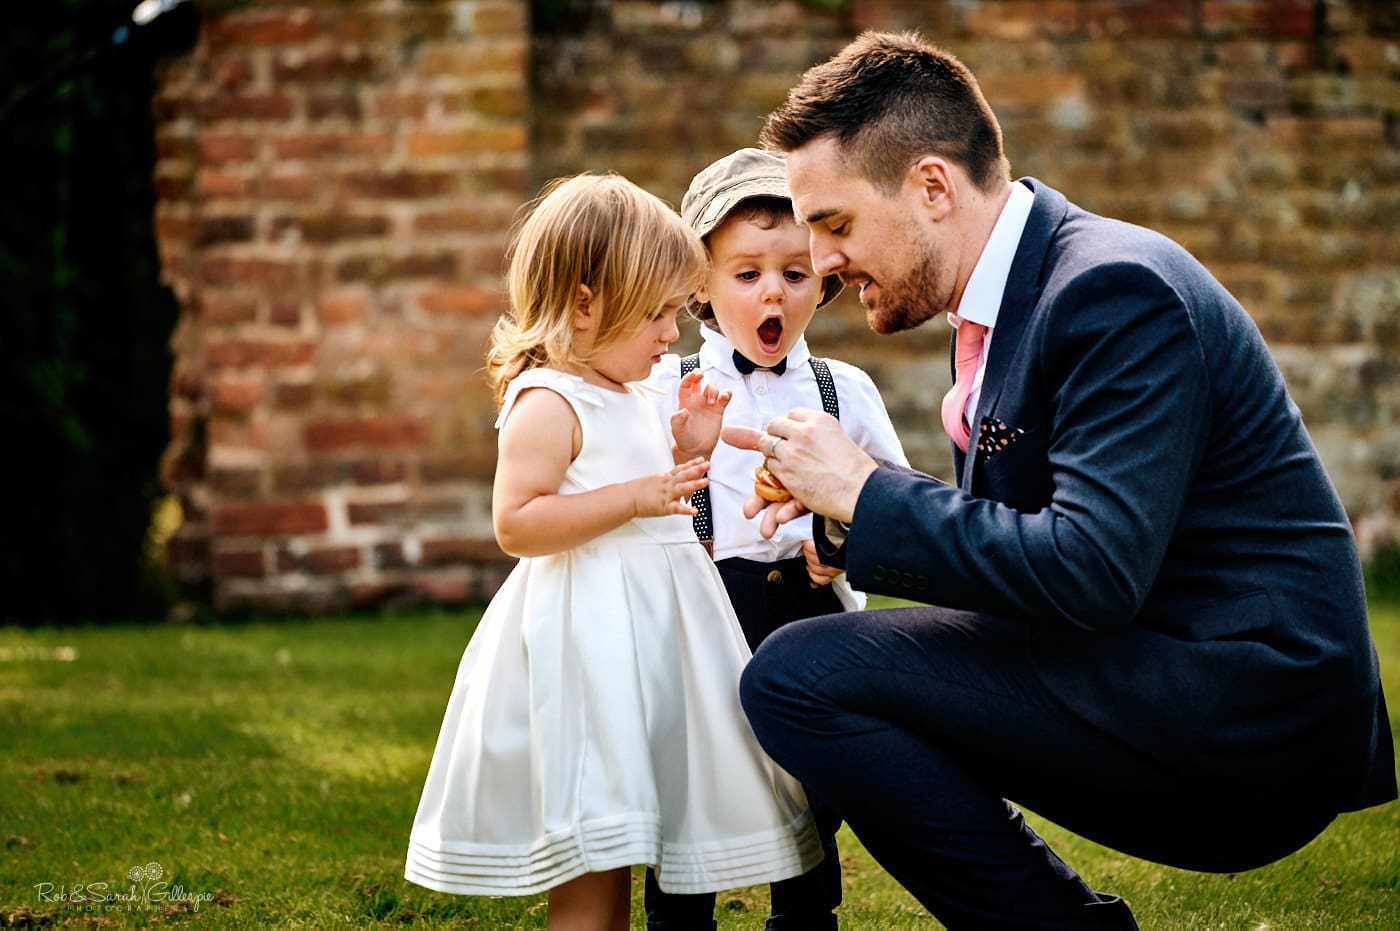 Wedding guest plays with kids during reception